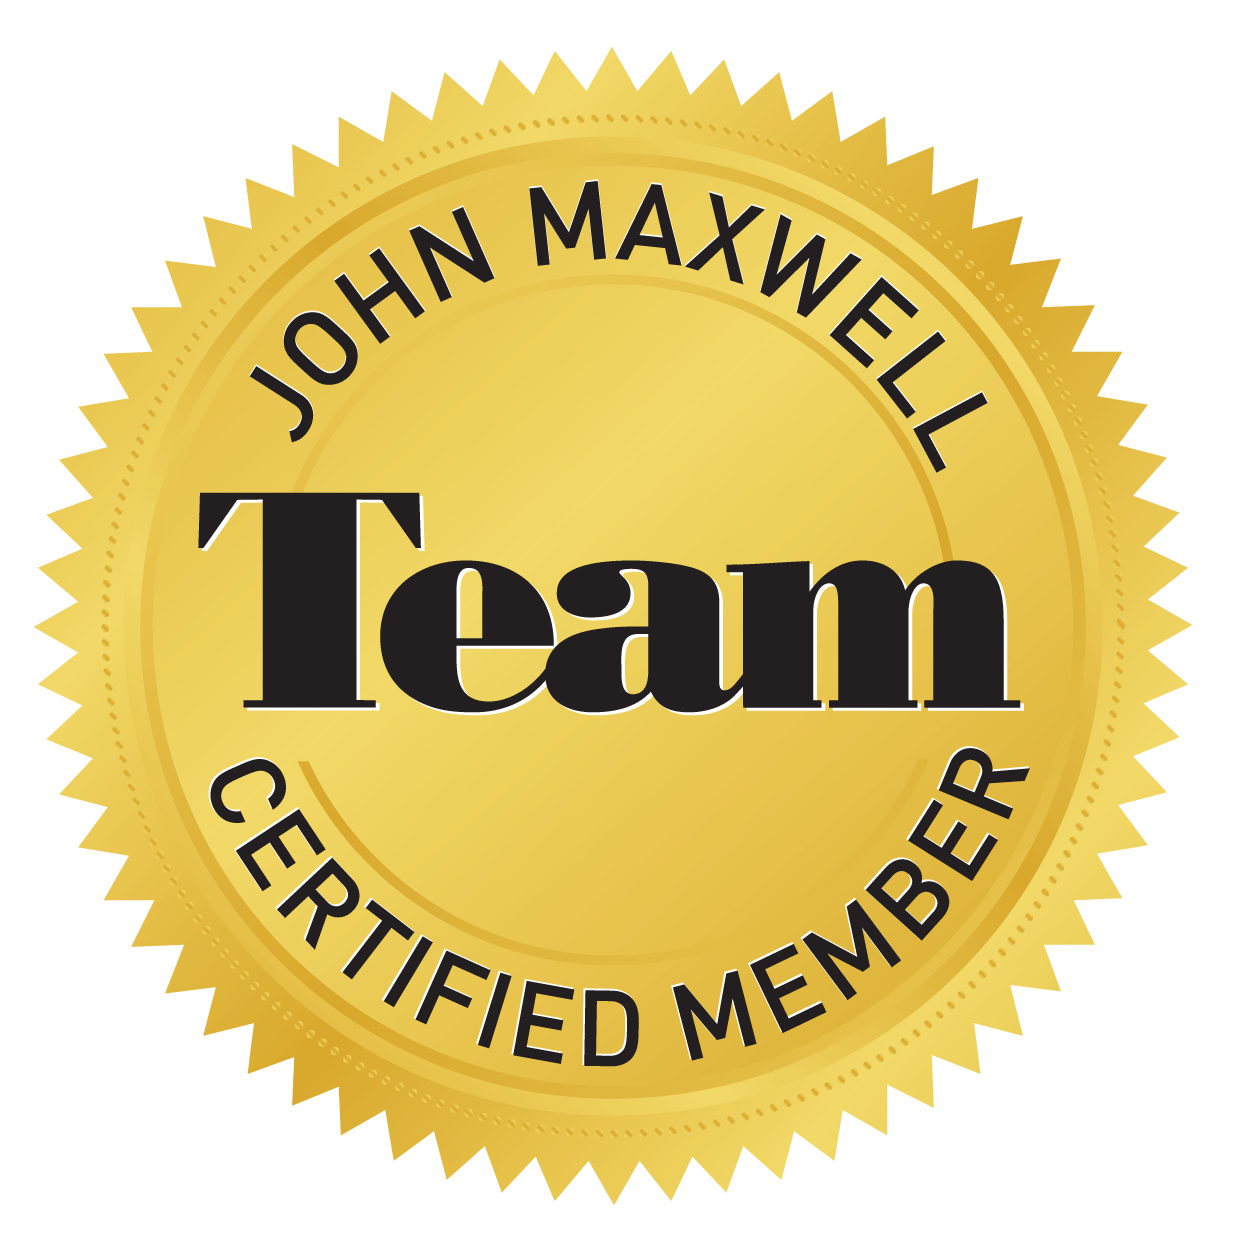 Lori King-Taylor, M.Ed is a John Maxwell Team Certified Speaker